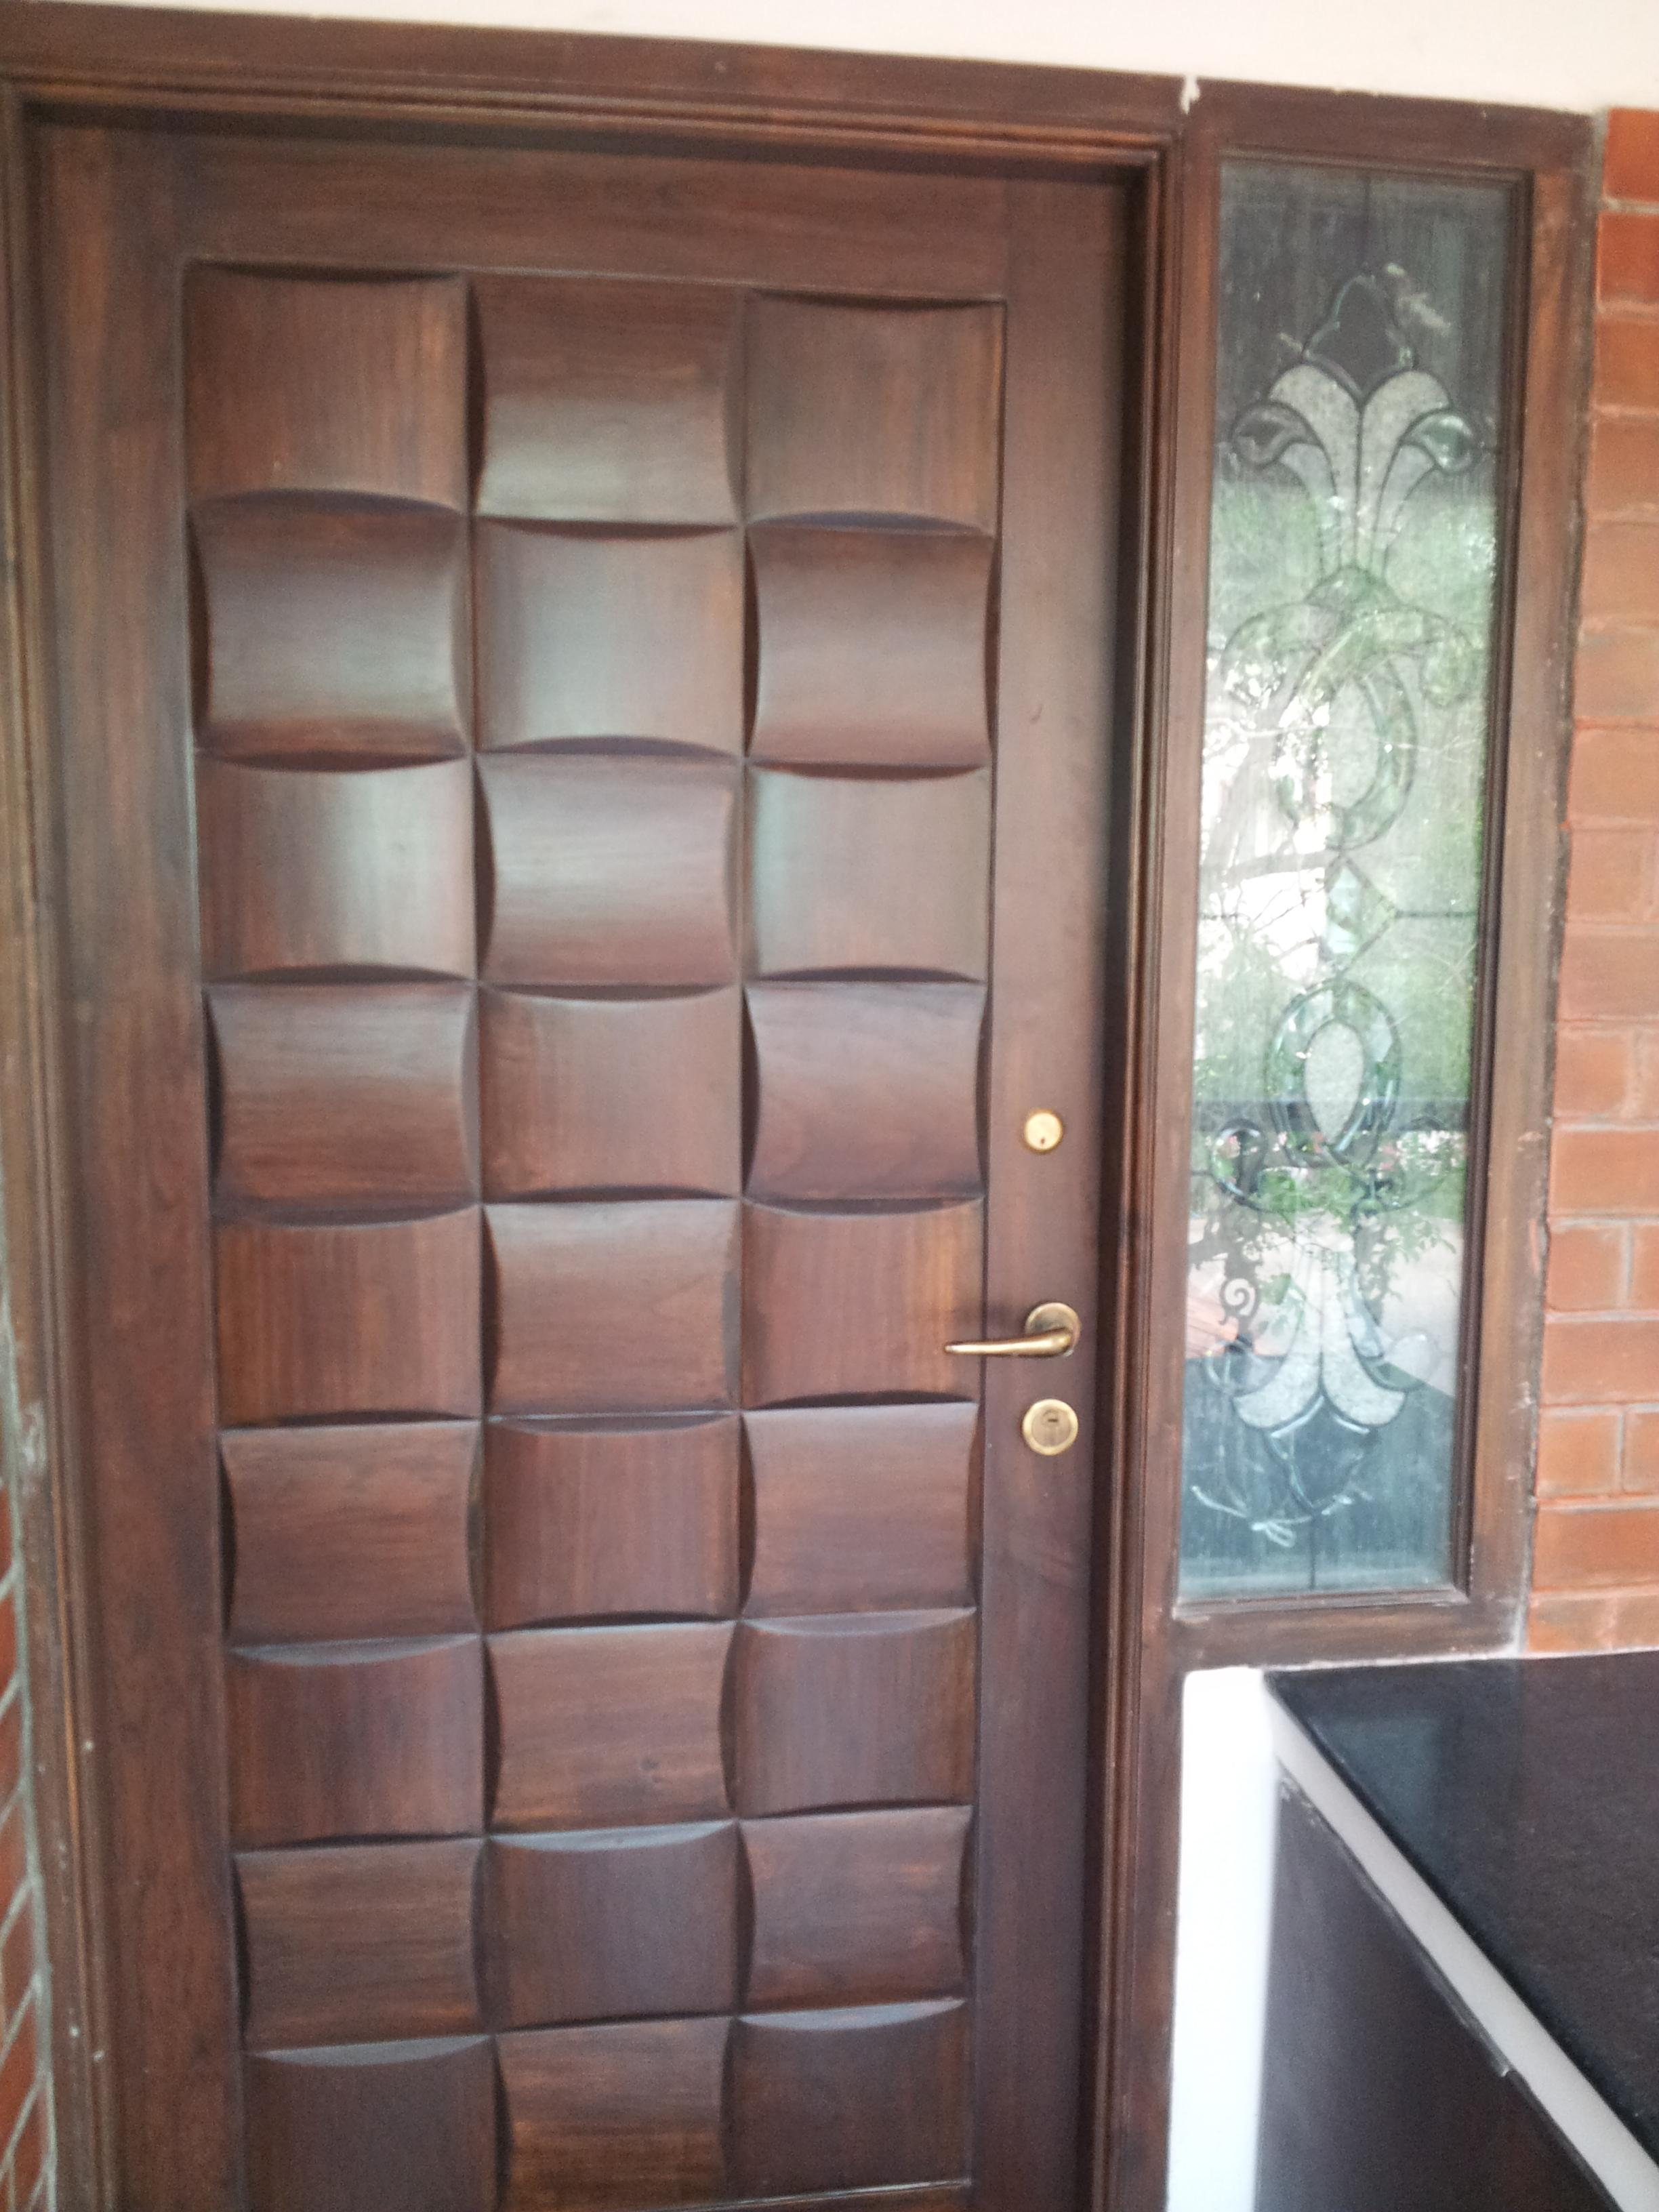 Main door design in wood very popular in 2013 gharexpert Wooden main door designs in india